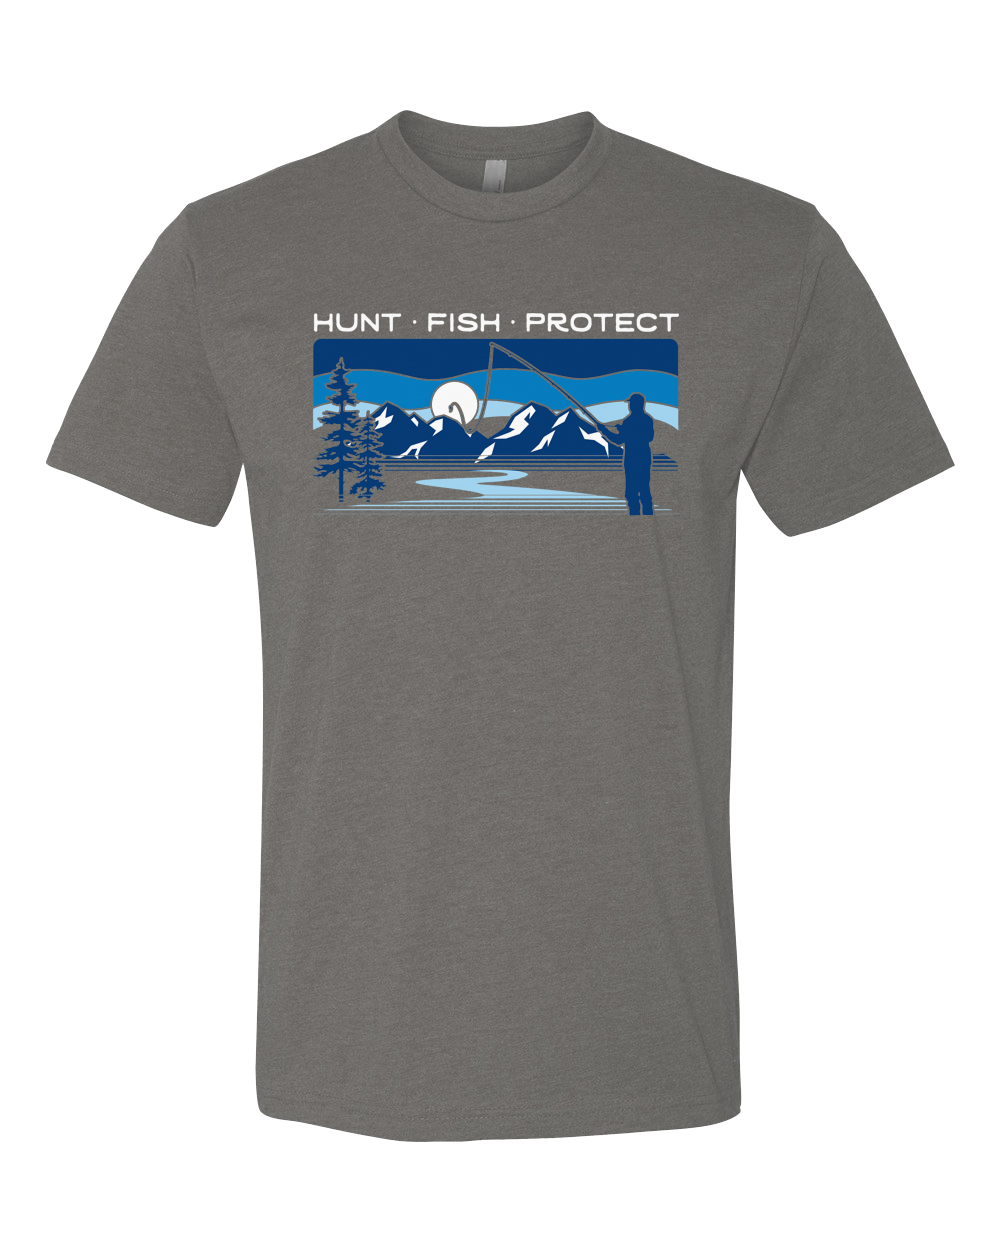 Hunt. Fish. Protect. is our yearly design which gives 15% back to Backcountry Hunters and Anglers for the life of the design. This years design takes inspiration from the Frank Church Wilderness and gives a nod to the many upcoming stream access fights we are bound to encounter.